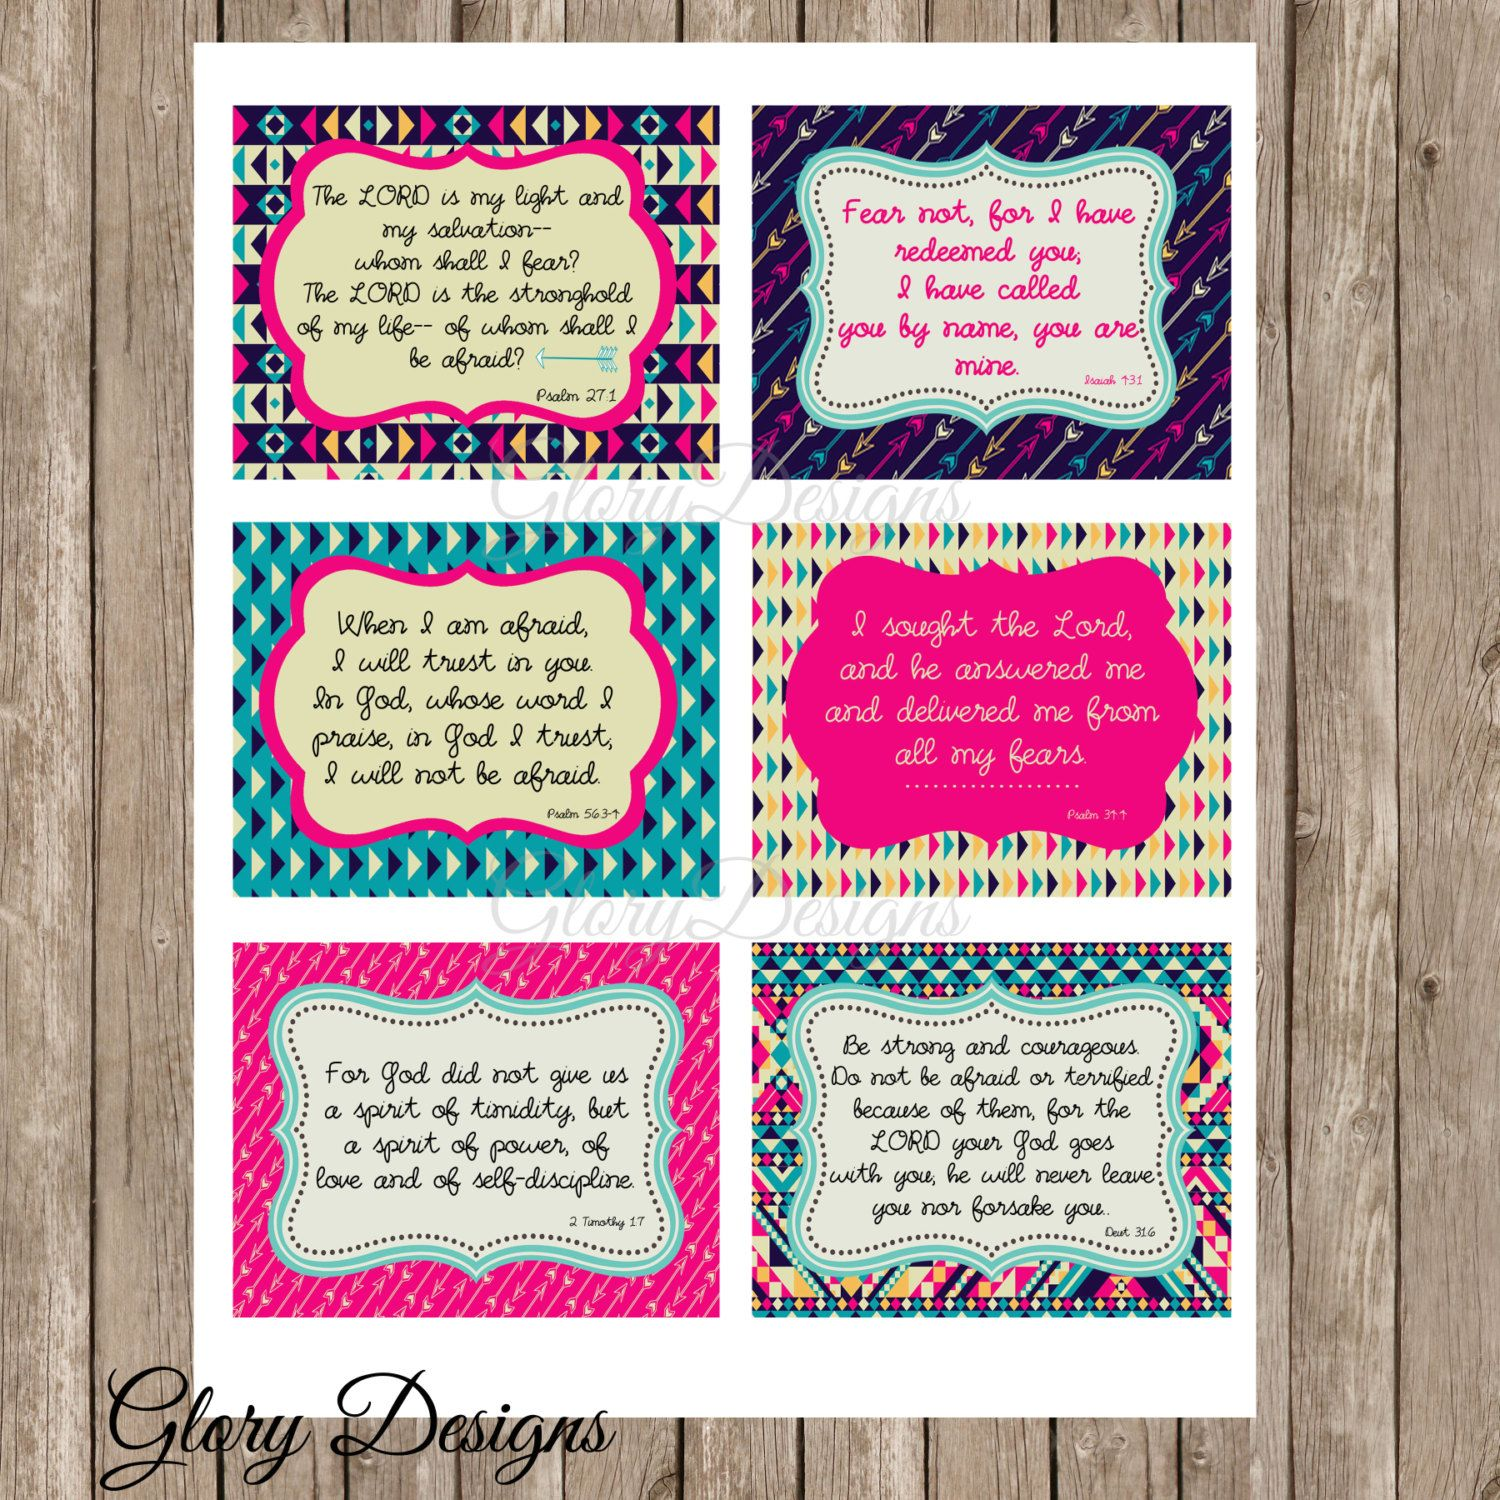 Instant Download Scripture Art Bible Verse By Glorydesigns On Etsy 1 00 Printable Prayers Scripture Cards Diy Prayer Cards